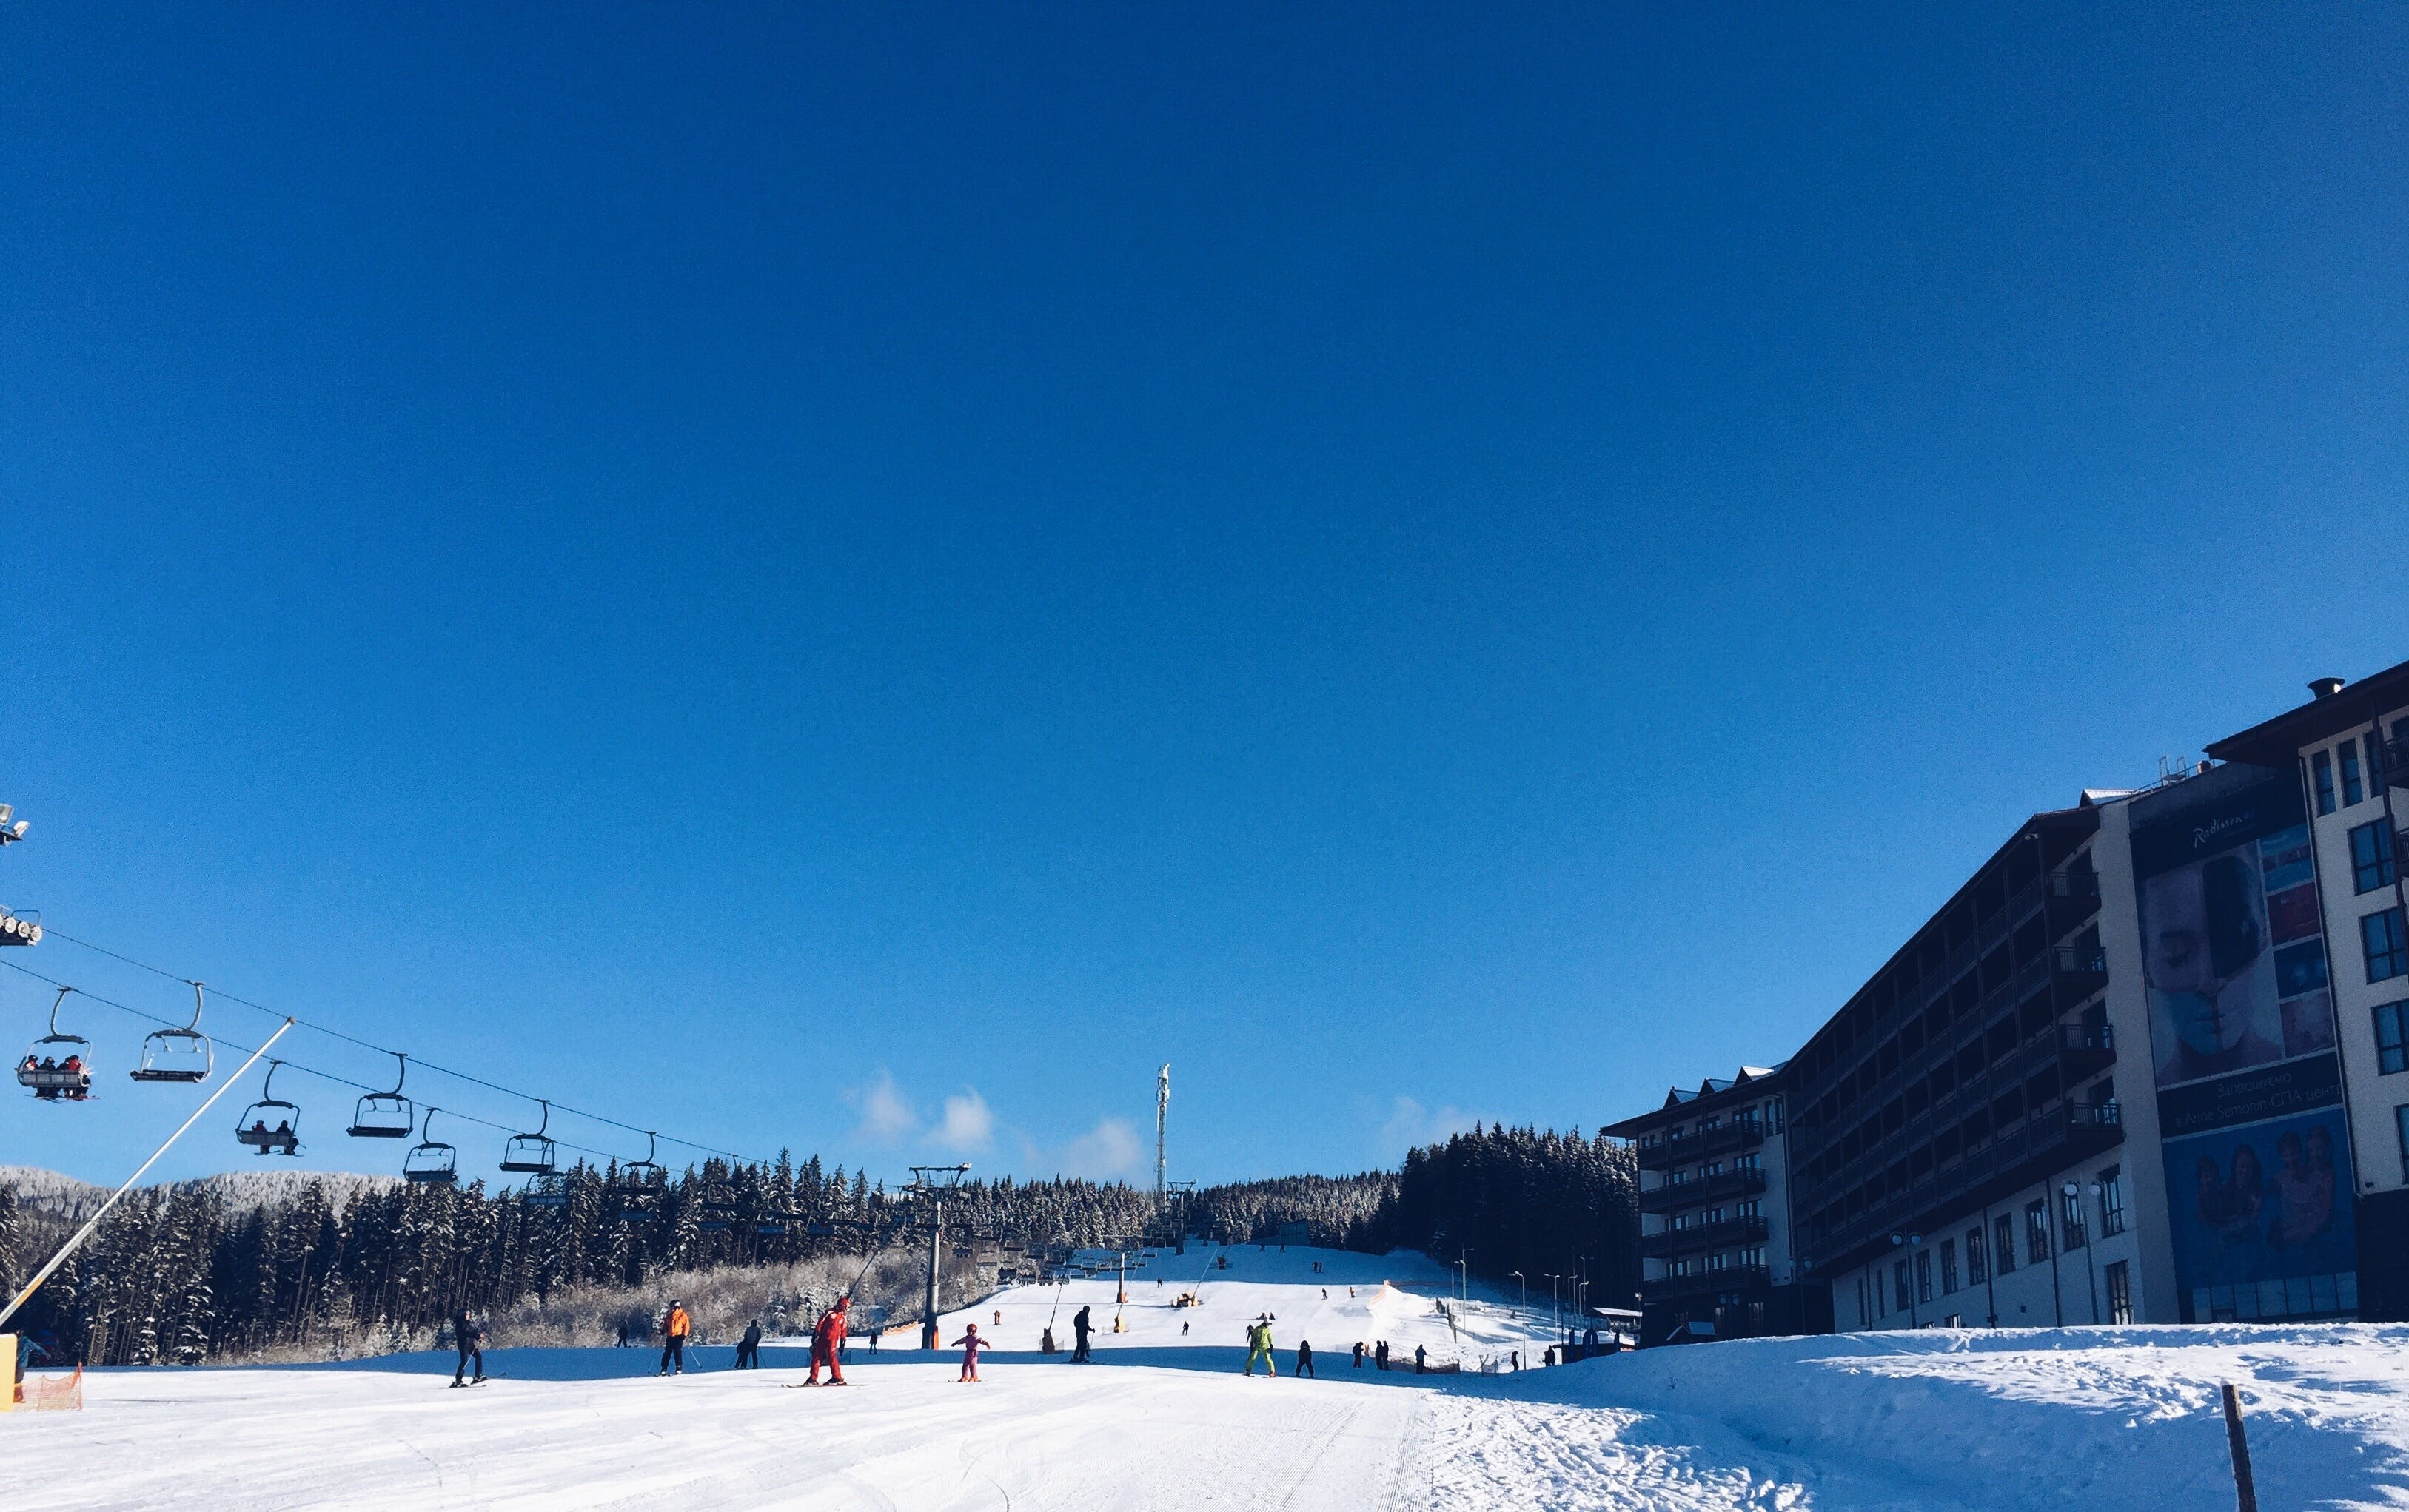 People on a Snowy Ski Hill With a Lift on the Left and a Hotel on the Right